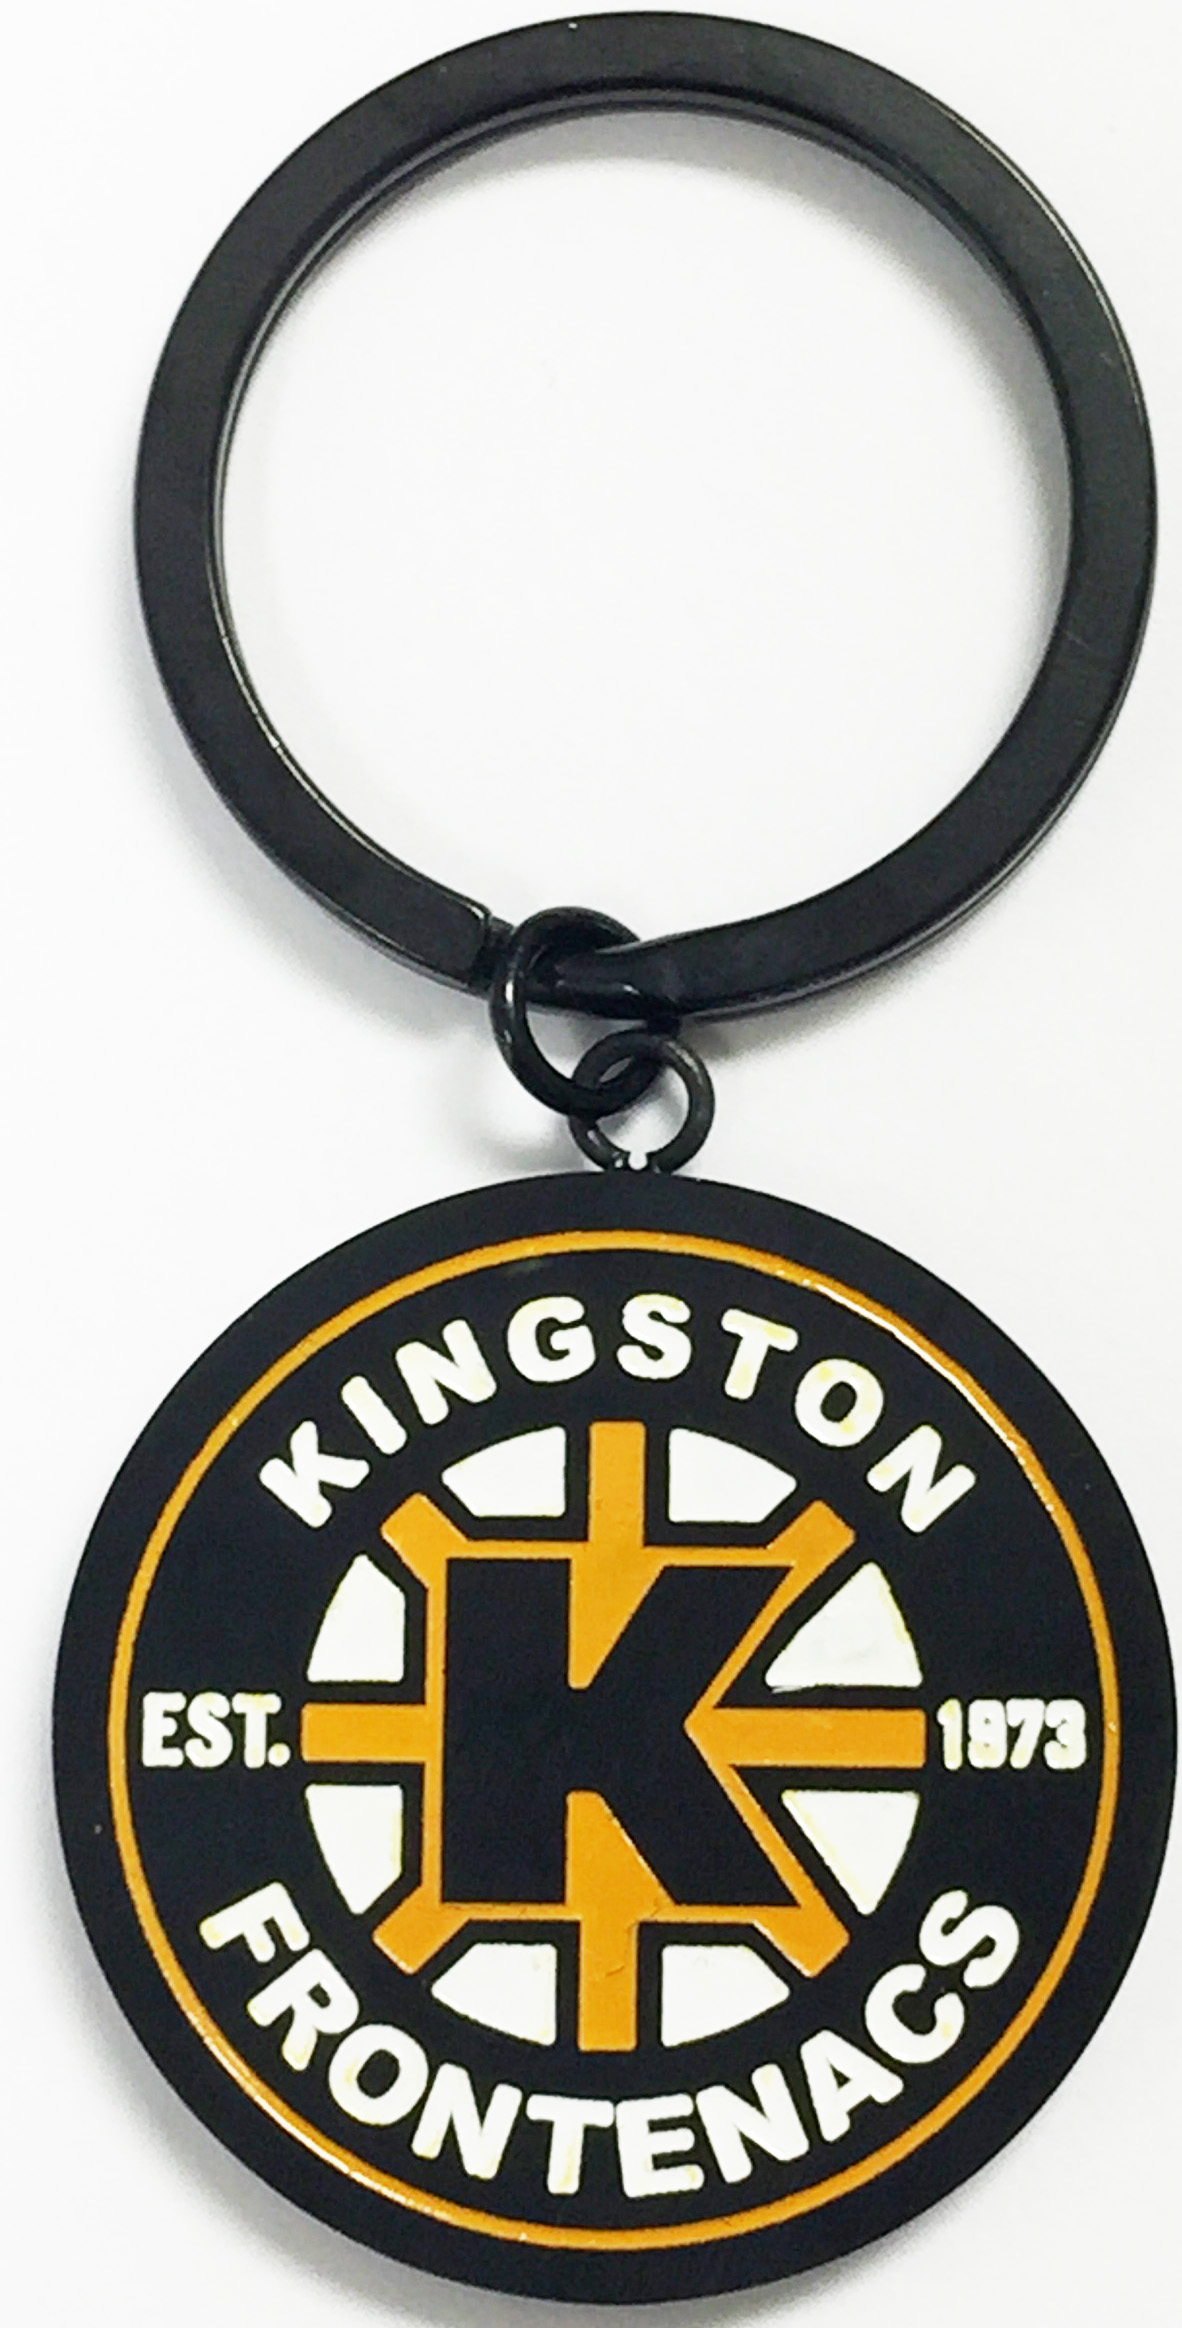 FRONTENACS KEY CHAIN